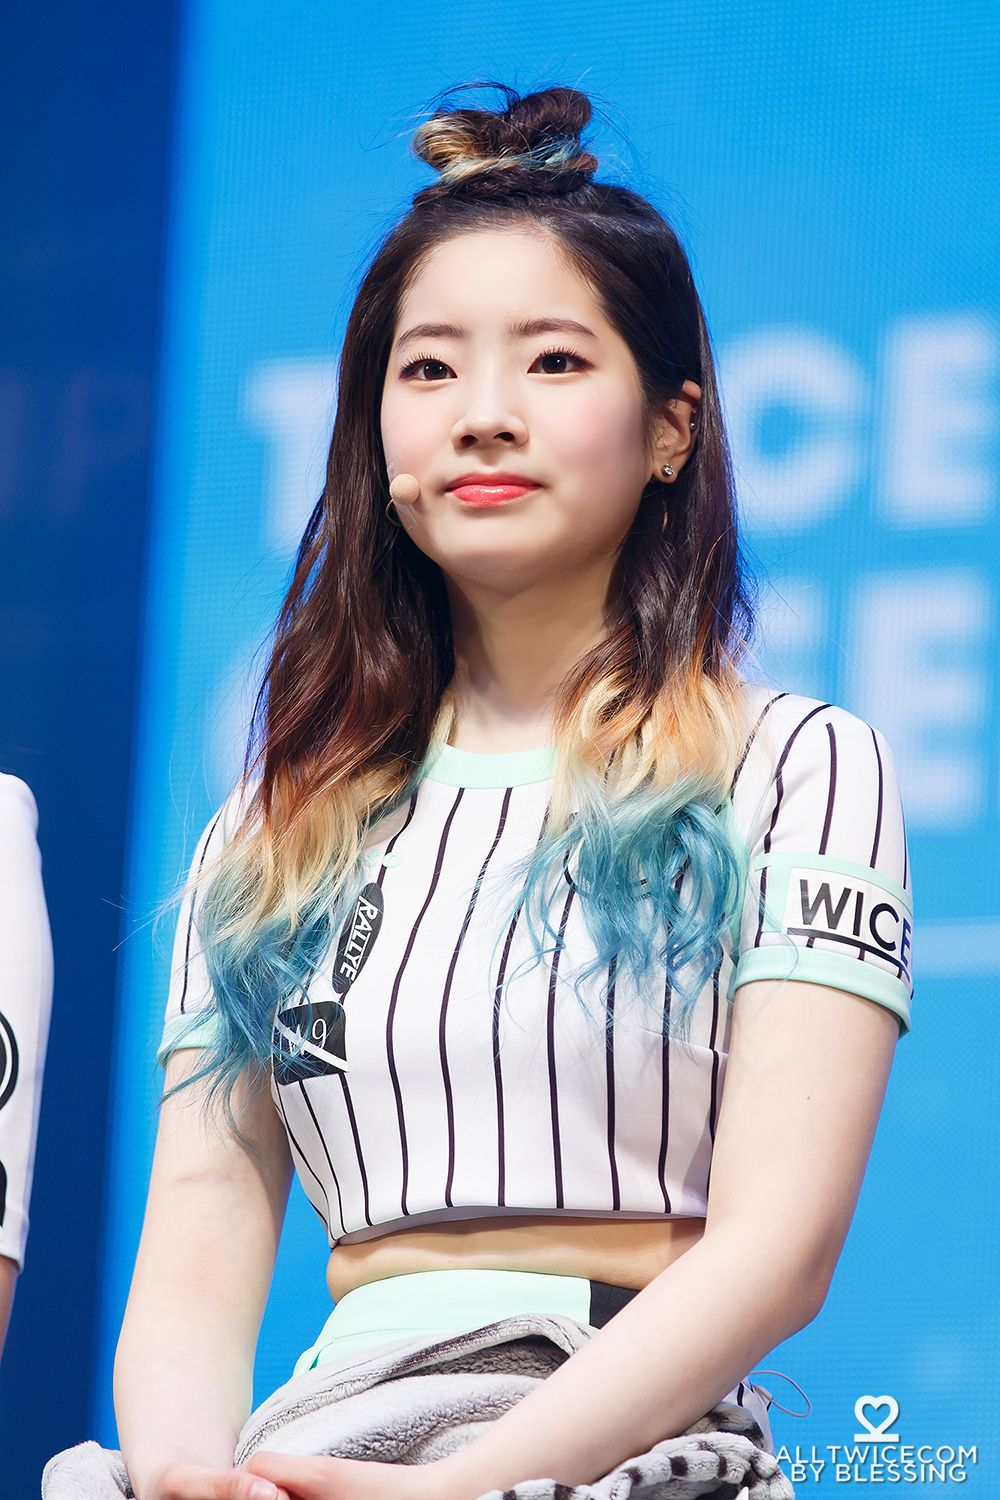 Twice Dahyun Dahyun Pinterest Kpop Kpop Girls And